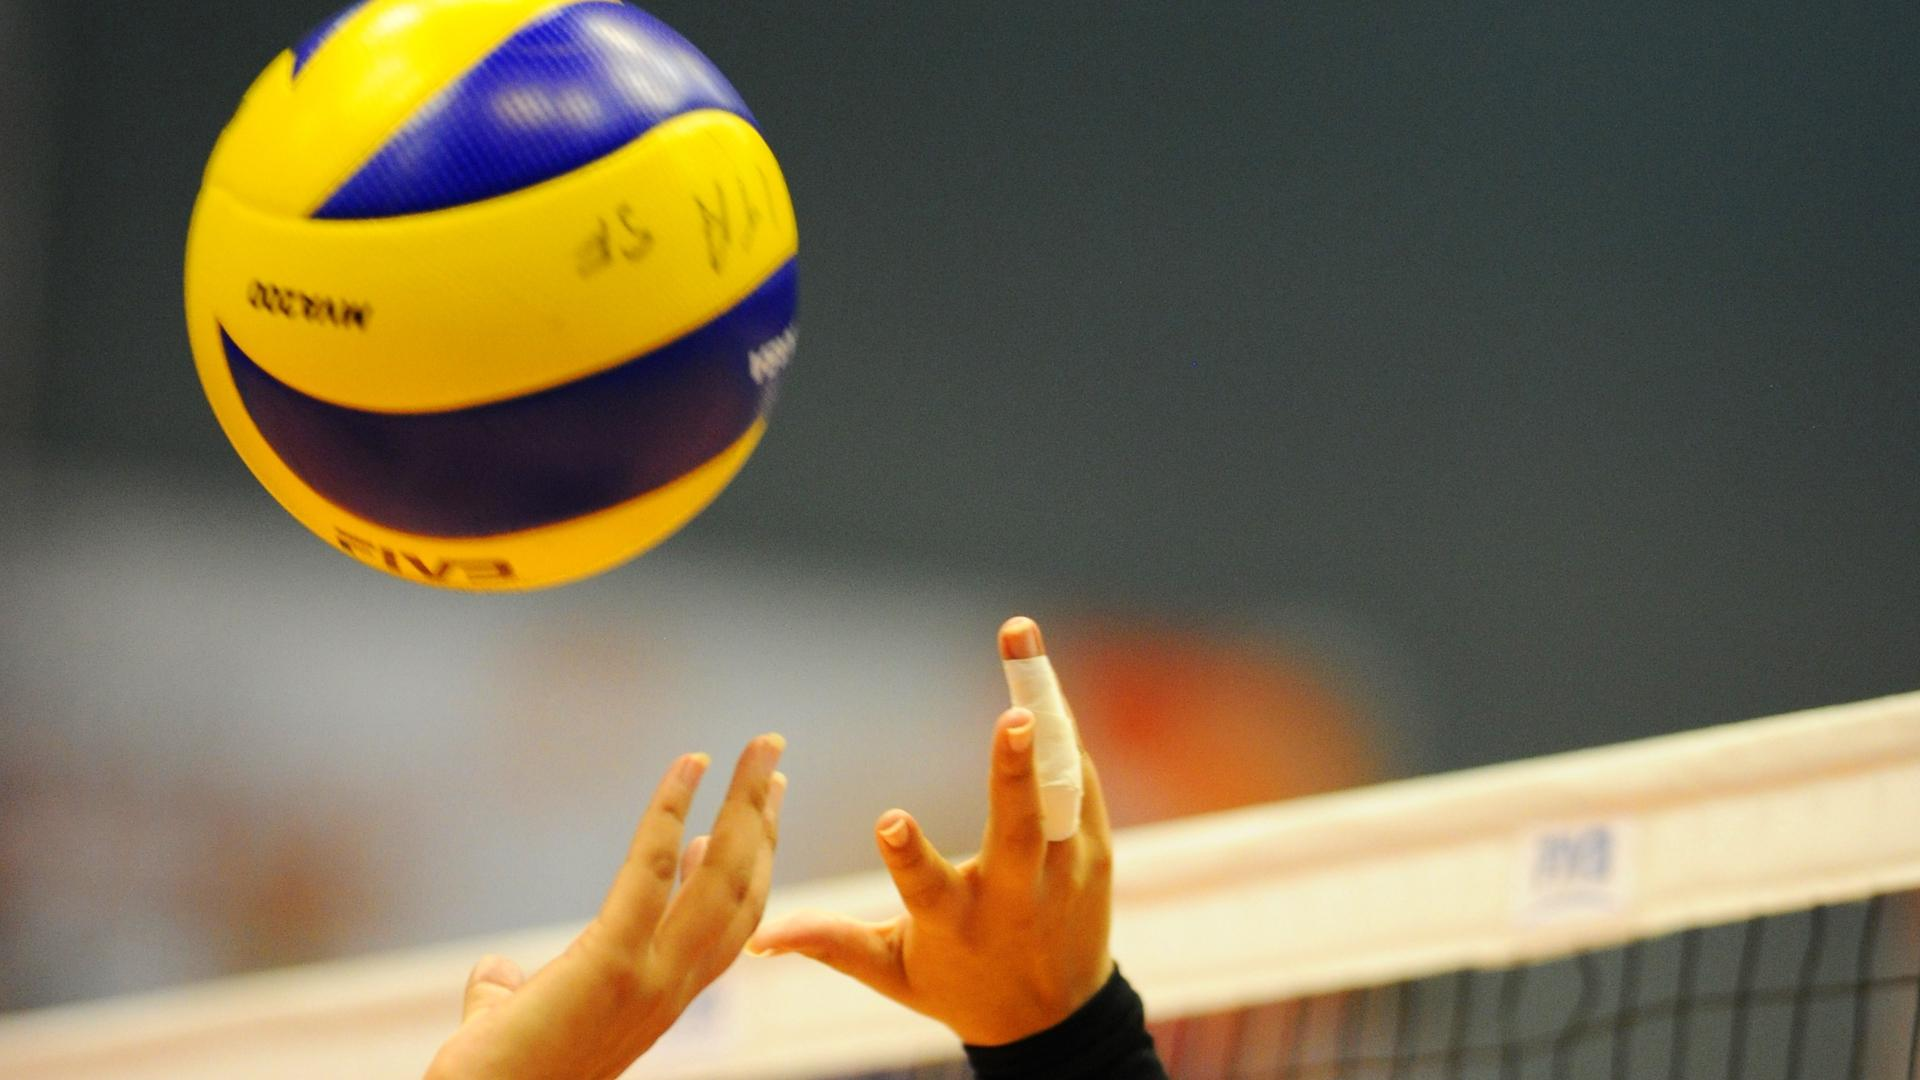 Volleyball Wallpapers Sports Hq Volleyball Pictures: CEV U17 Volleyball European Championship Men